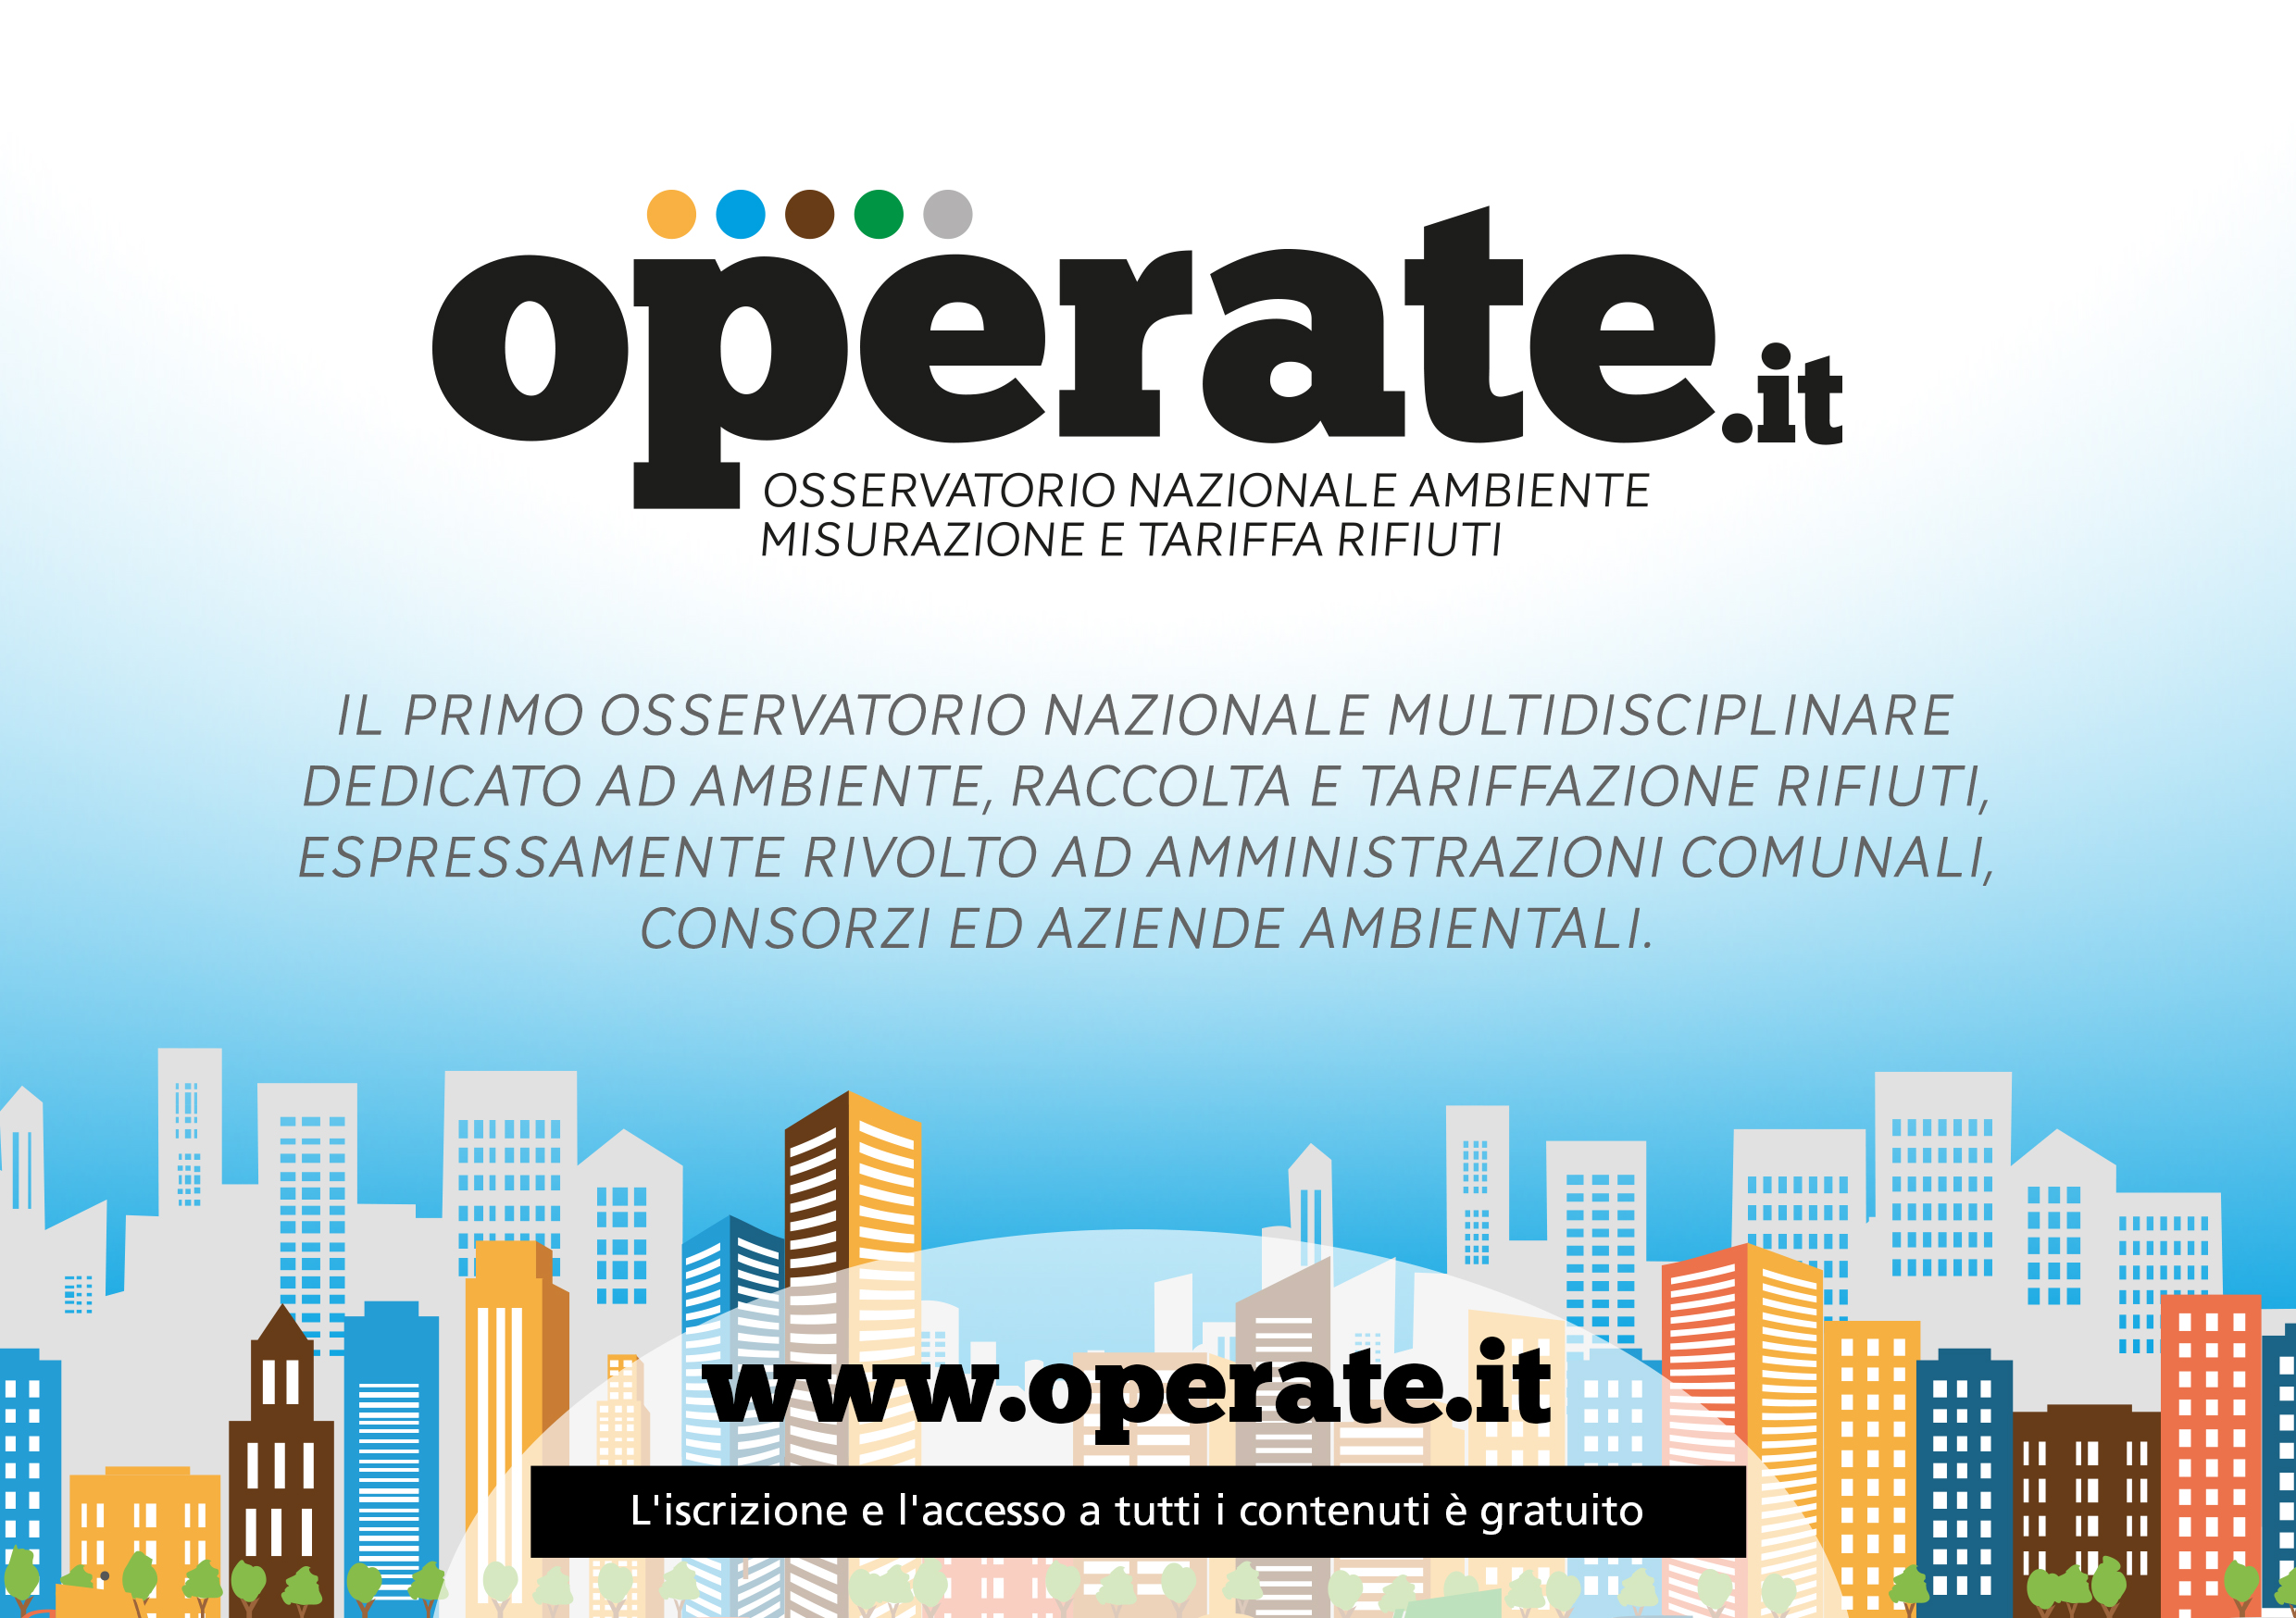 The Operate portalis online | National Observatory for Measurement and Waste Tax : operate.it